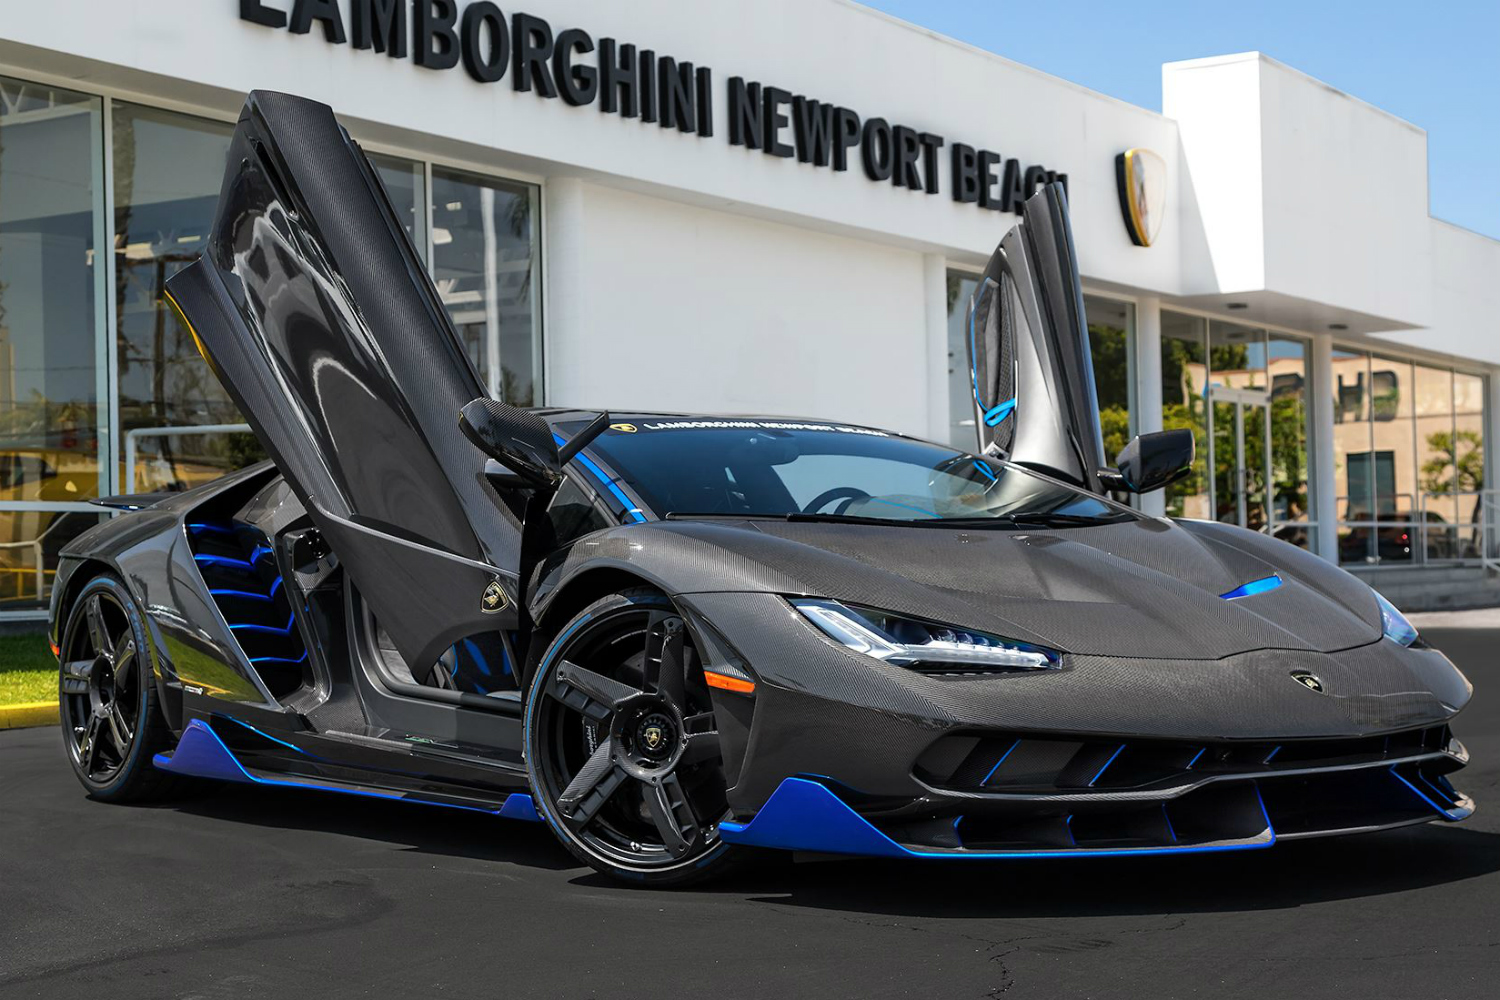 2 Person Smart Car >> The first Lamborghini Centenario sold in the U.S. was unboxed in Newport Beach